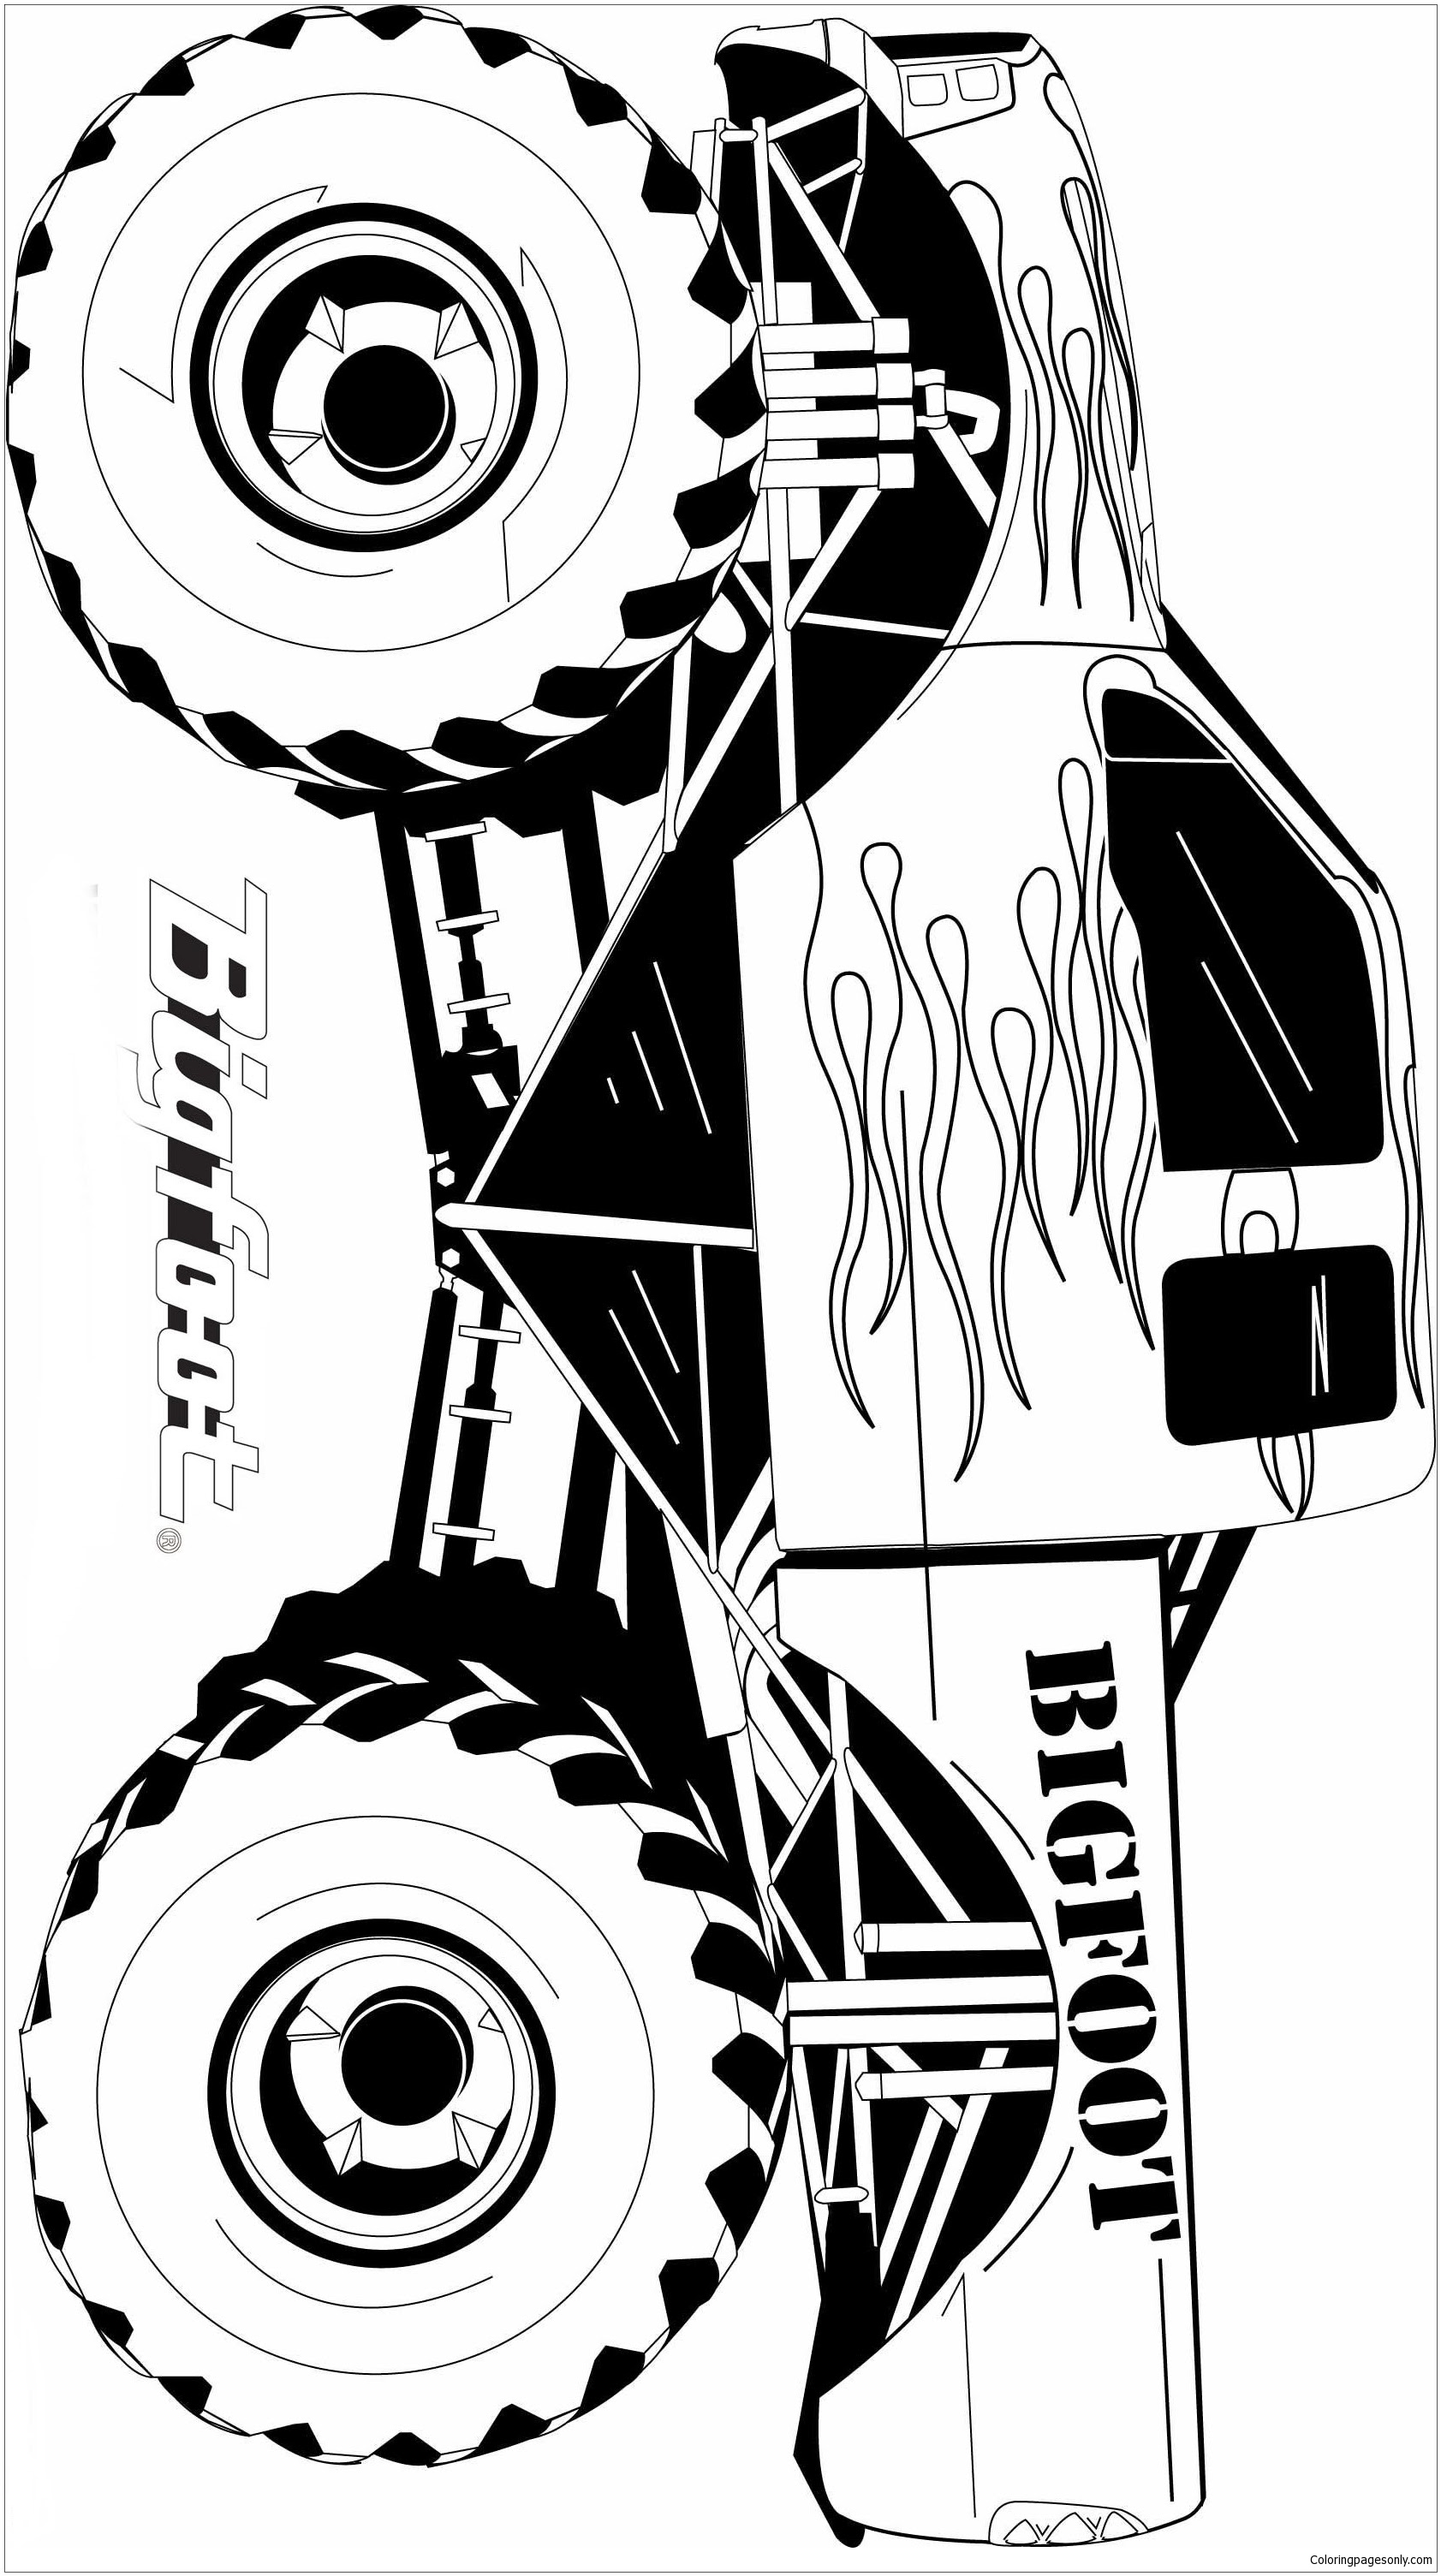 Batman Monster Truck Coloring Pages | Top Free Printable ...